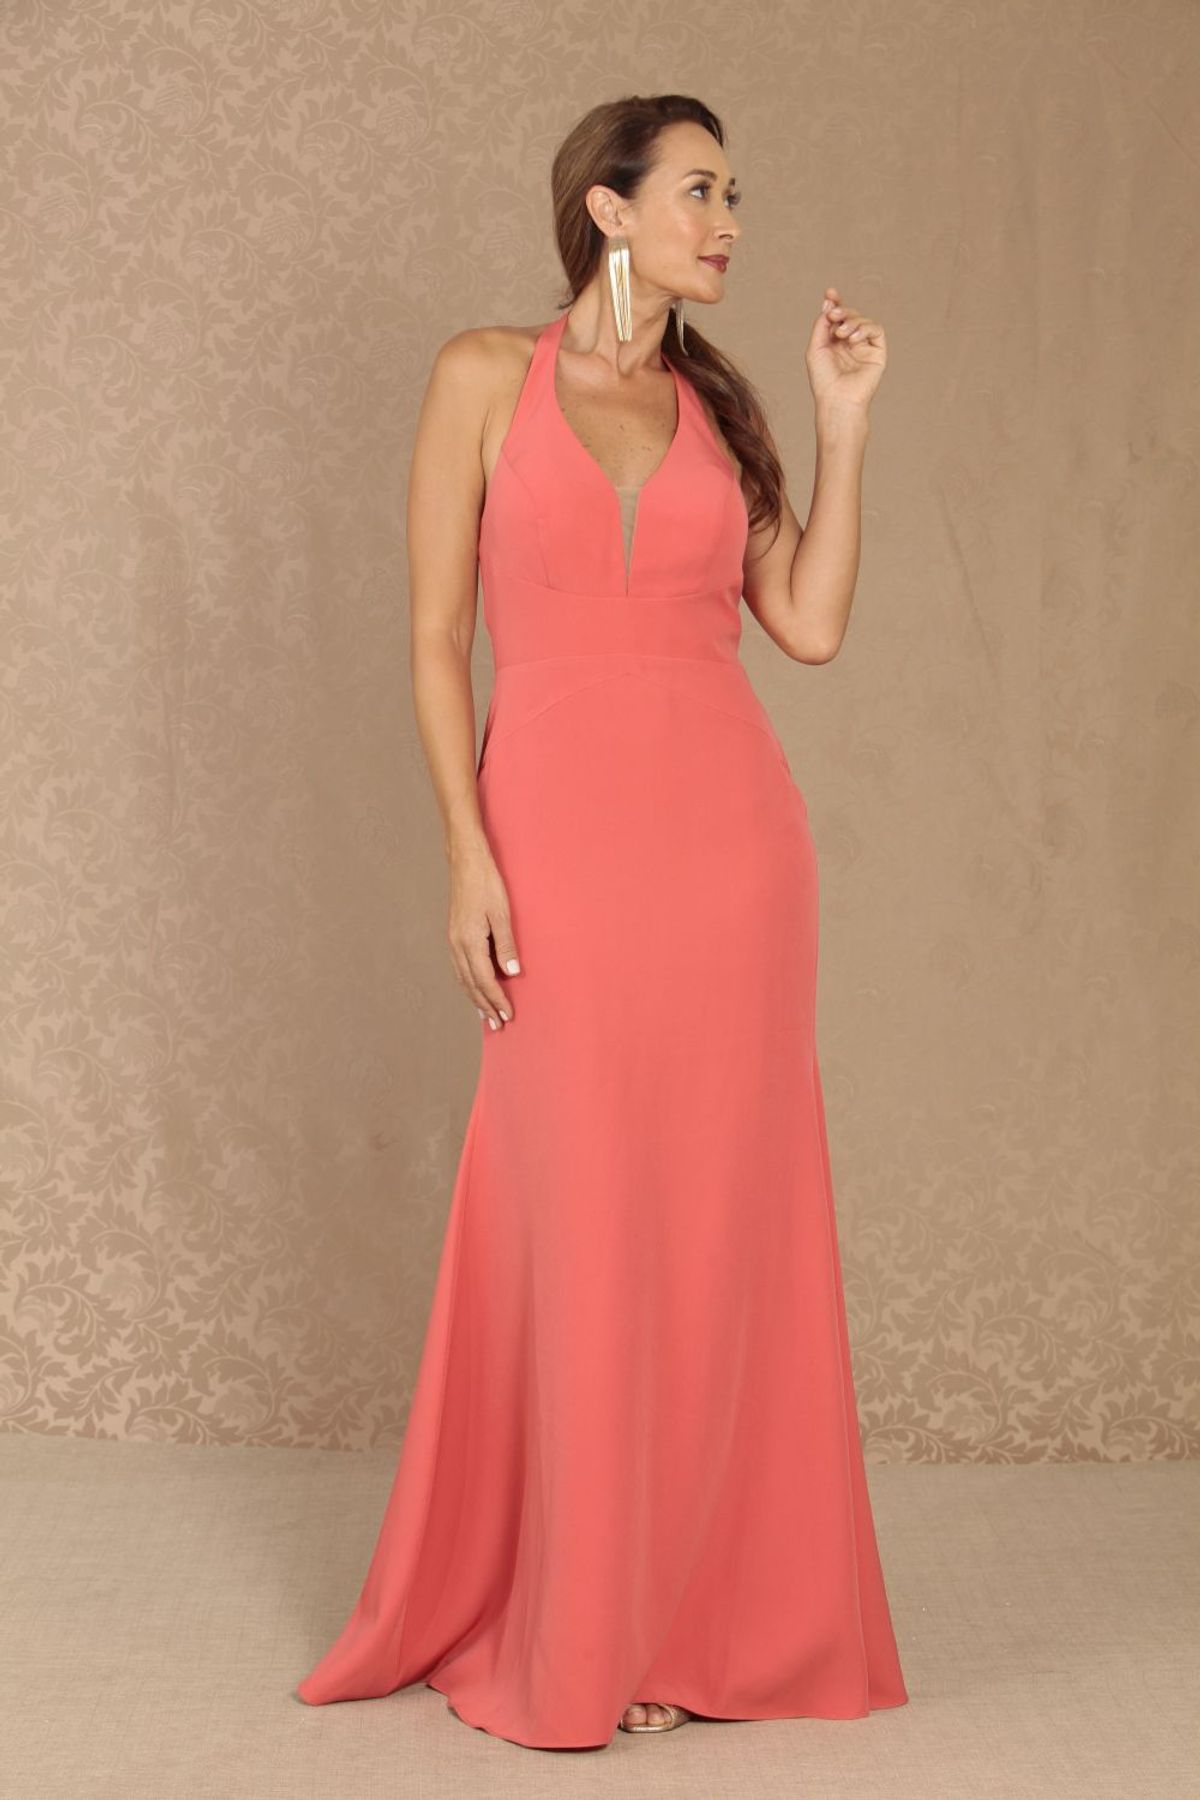 043999-coral--6-